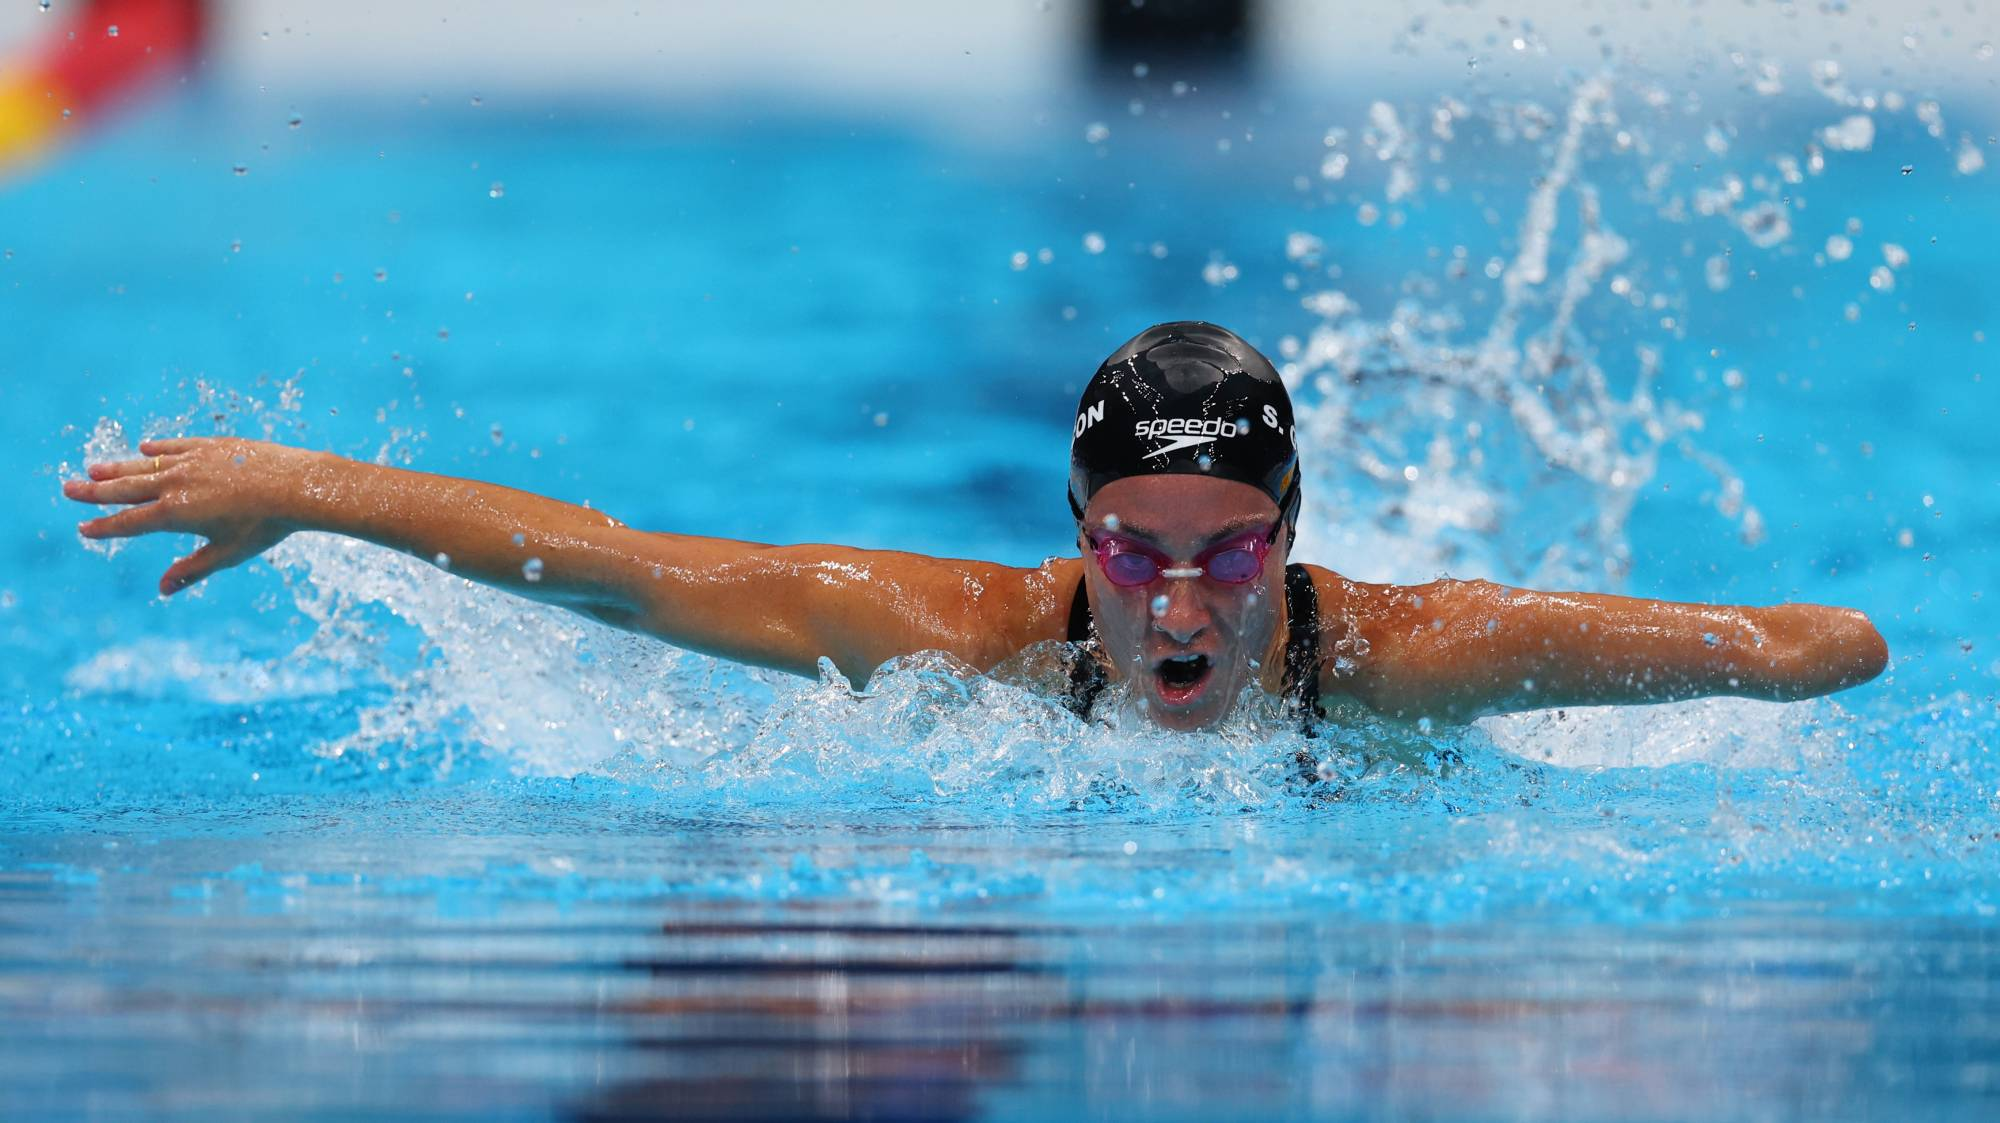 Sarai Gascon of Spain in action during a qualifying heat of the women's SM9 200-meter individual medley   REUTERS